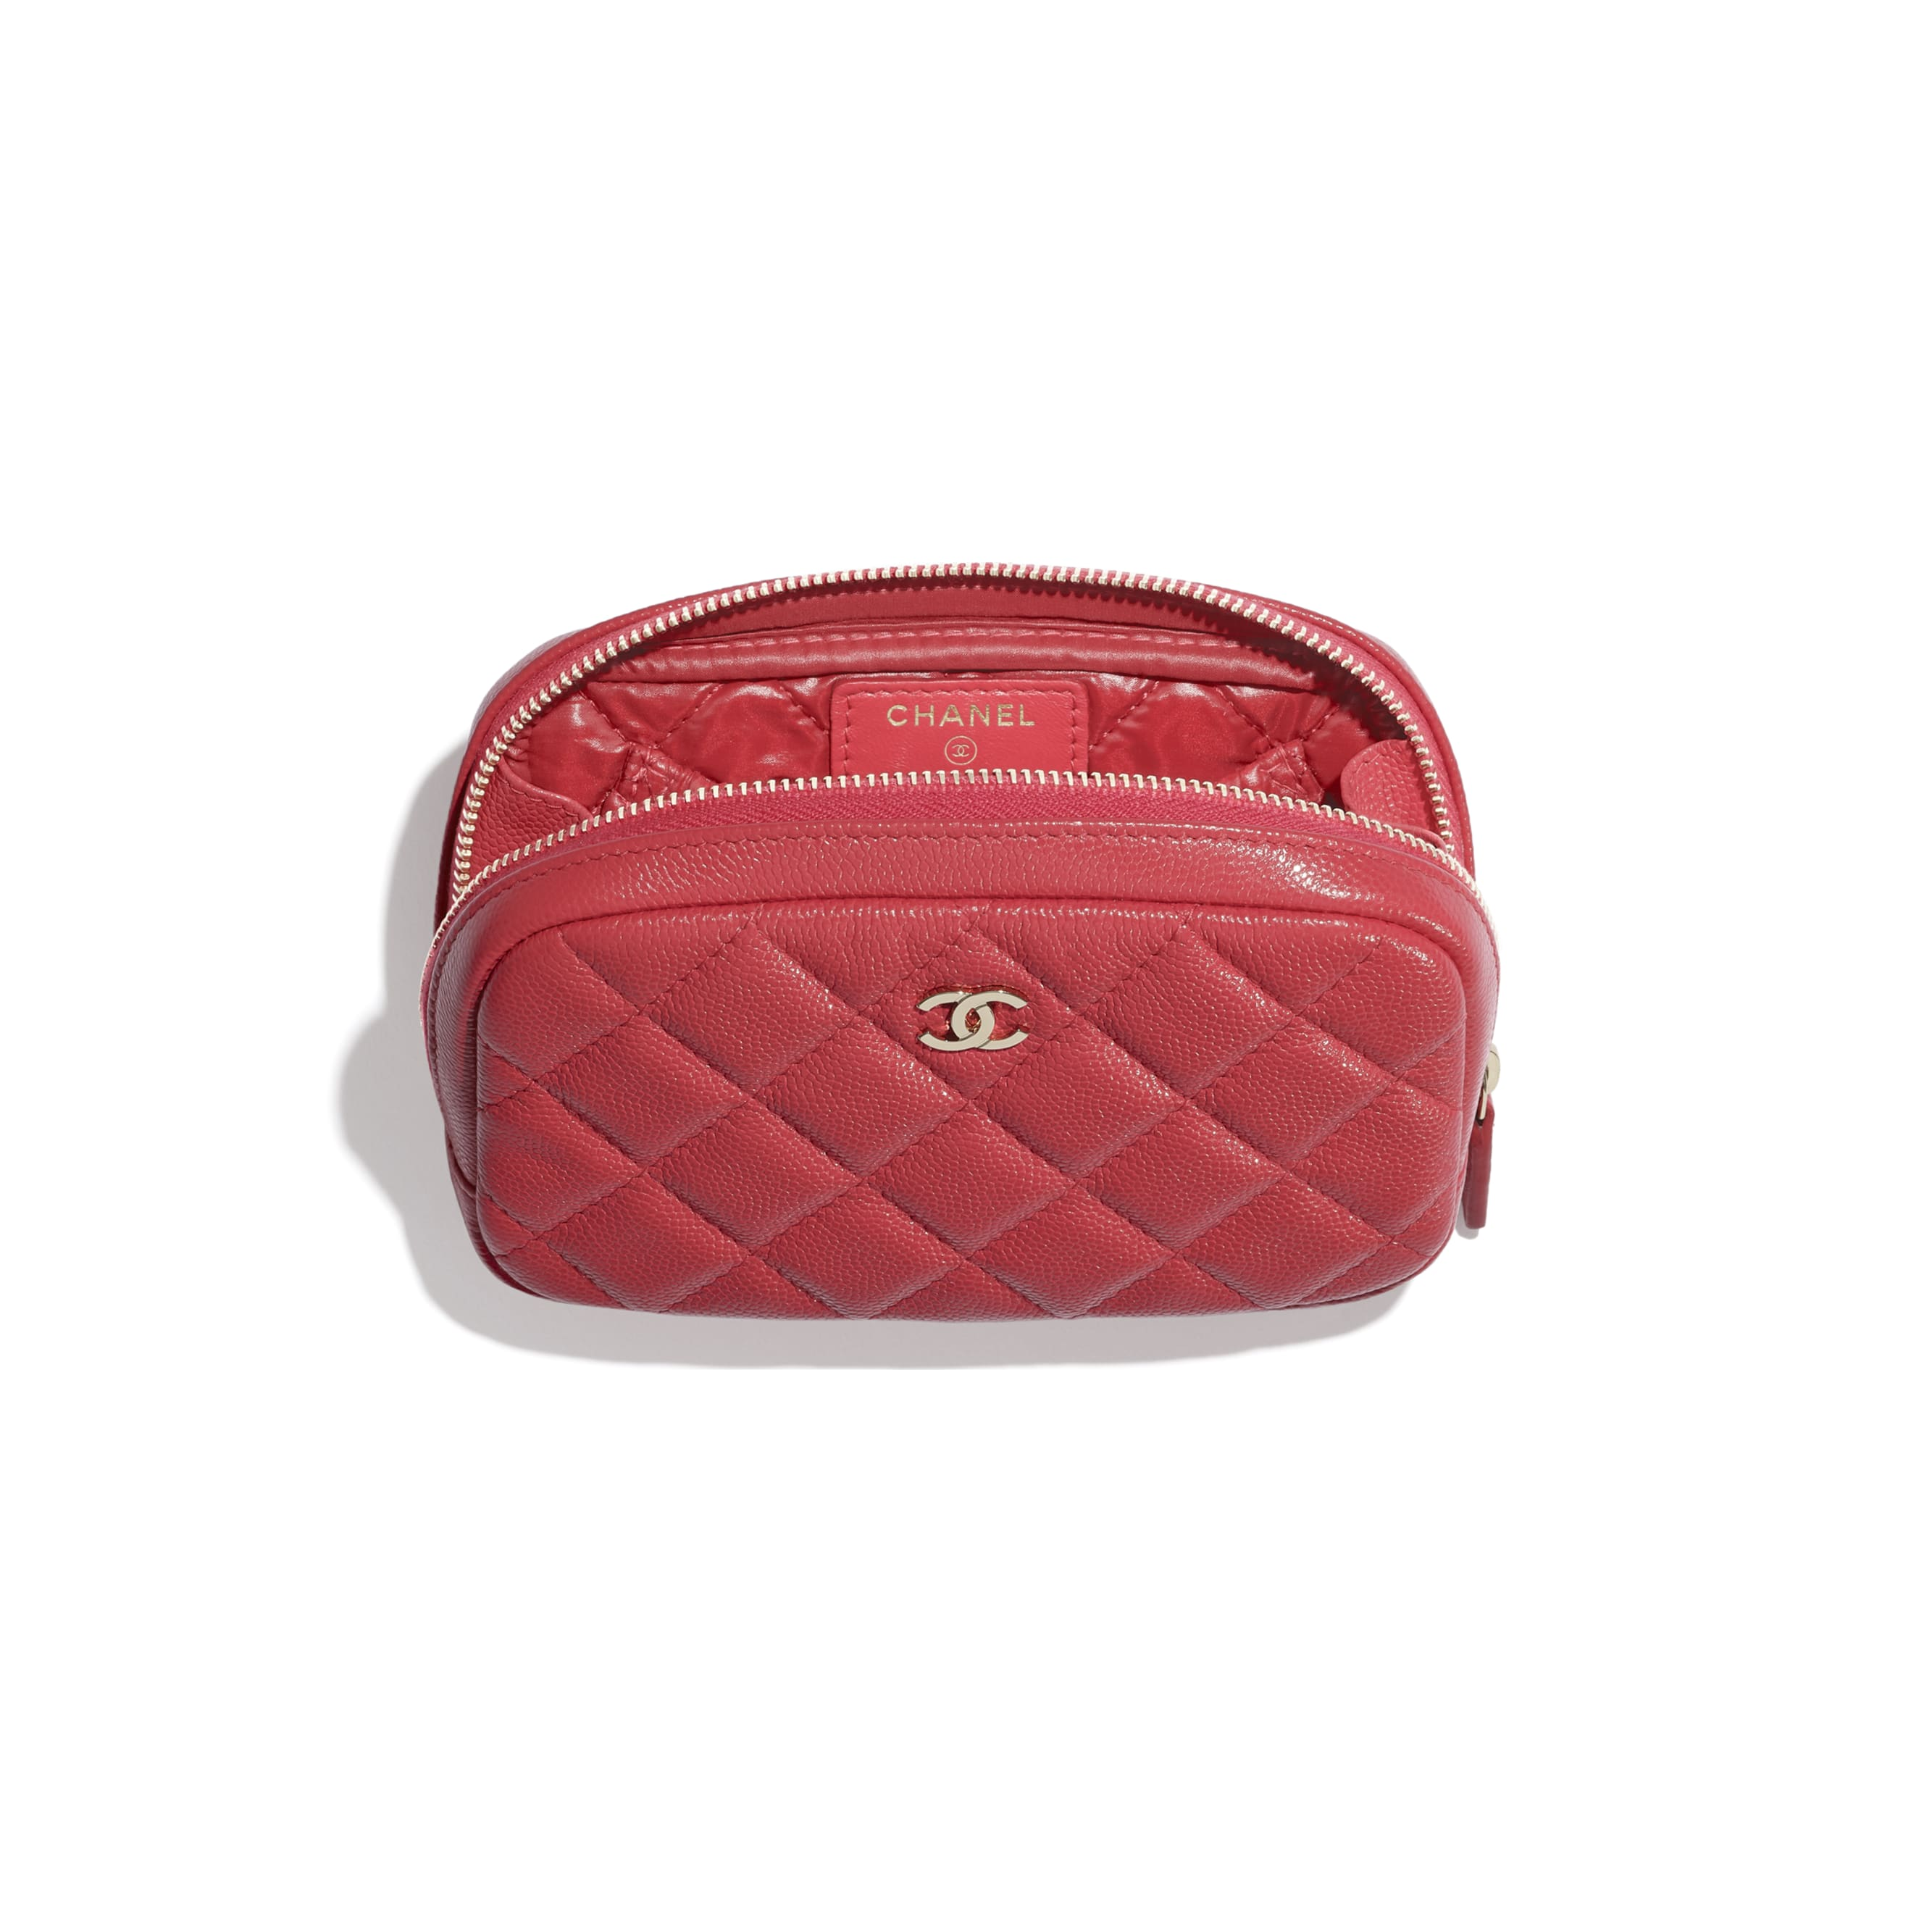 Classic Case - Red - Grained Shiny Calfskin & Gold-Tone Metal - CHANEL - Alternative view - see standard sized version